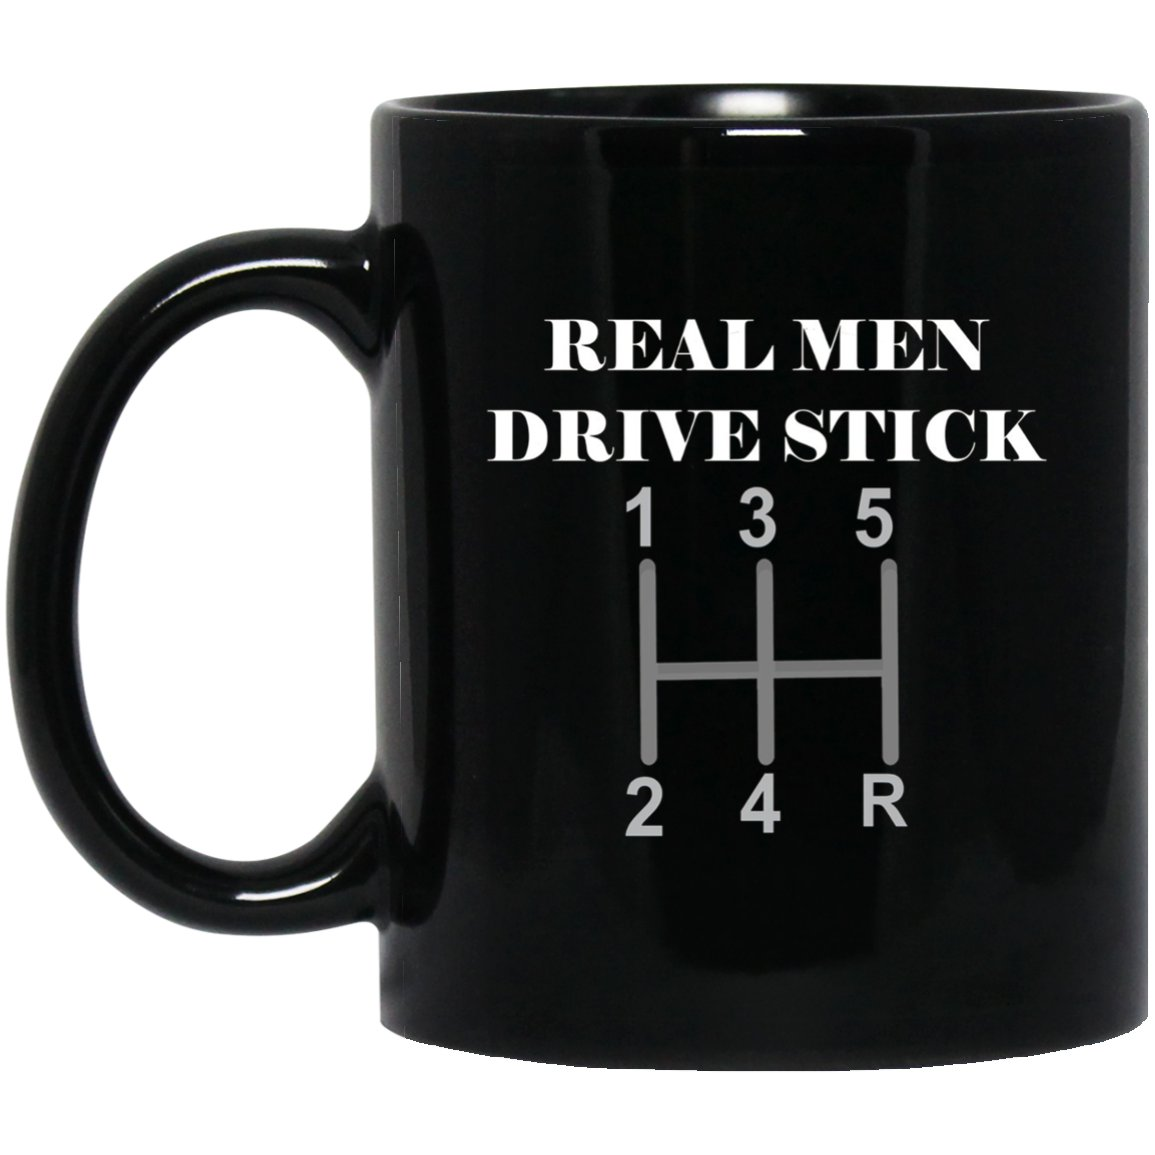 Real Men Drive Stick Shift - Car Truck SUV Gears Black  Mug Black Ceramic 11oz Coffee Tea Cup